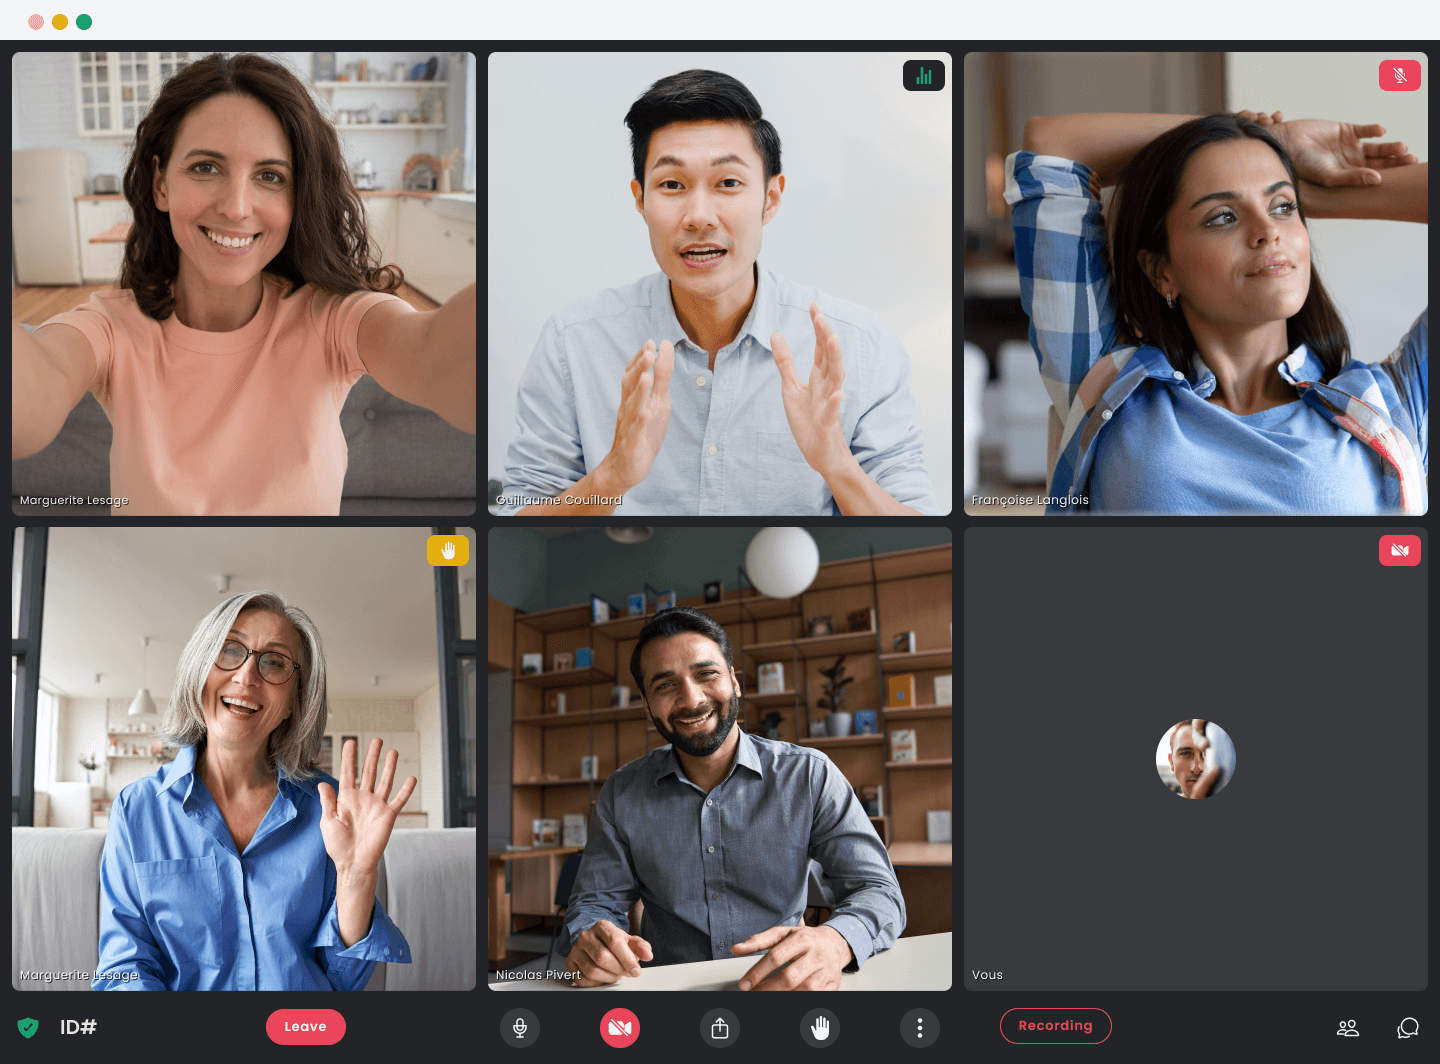 Six professionals attending an online meeting with the Crewdle application